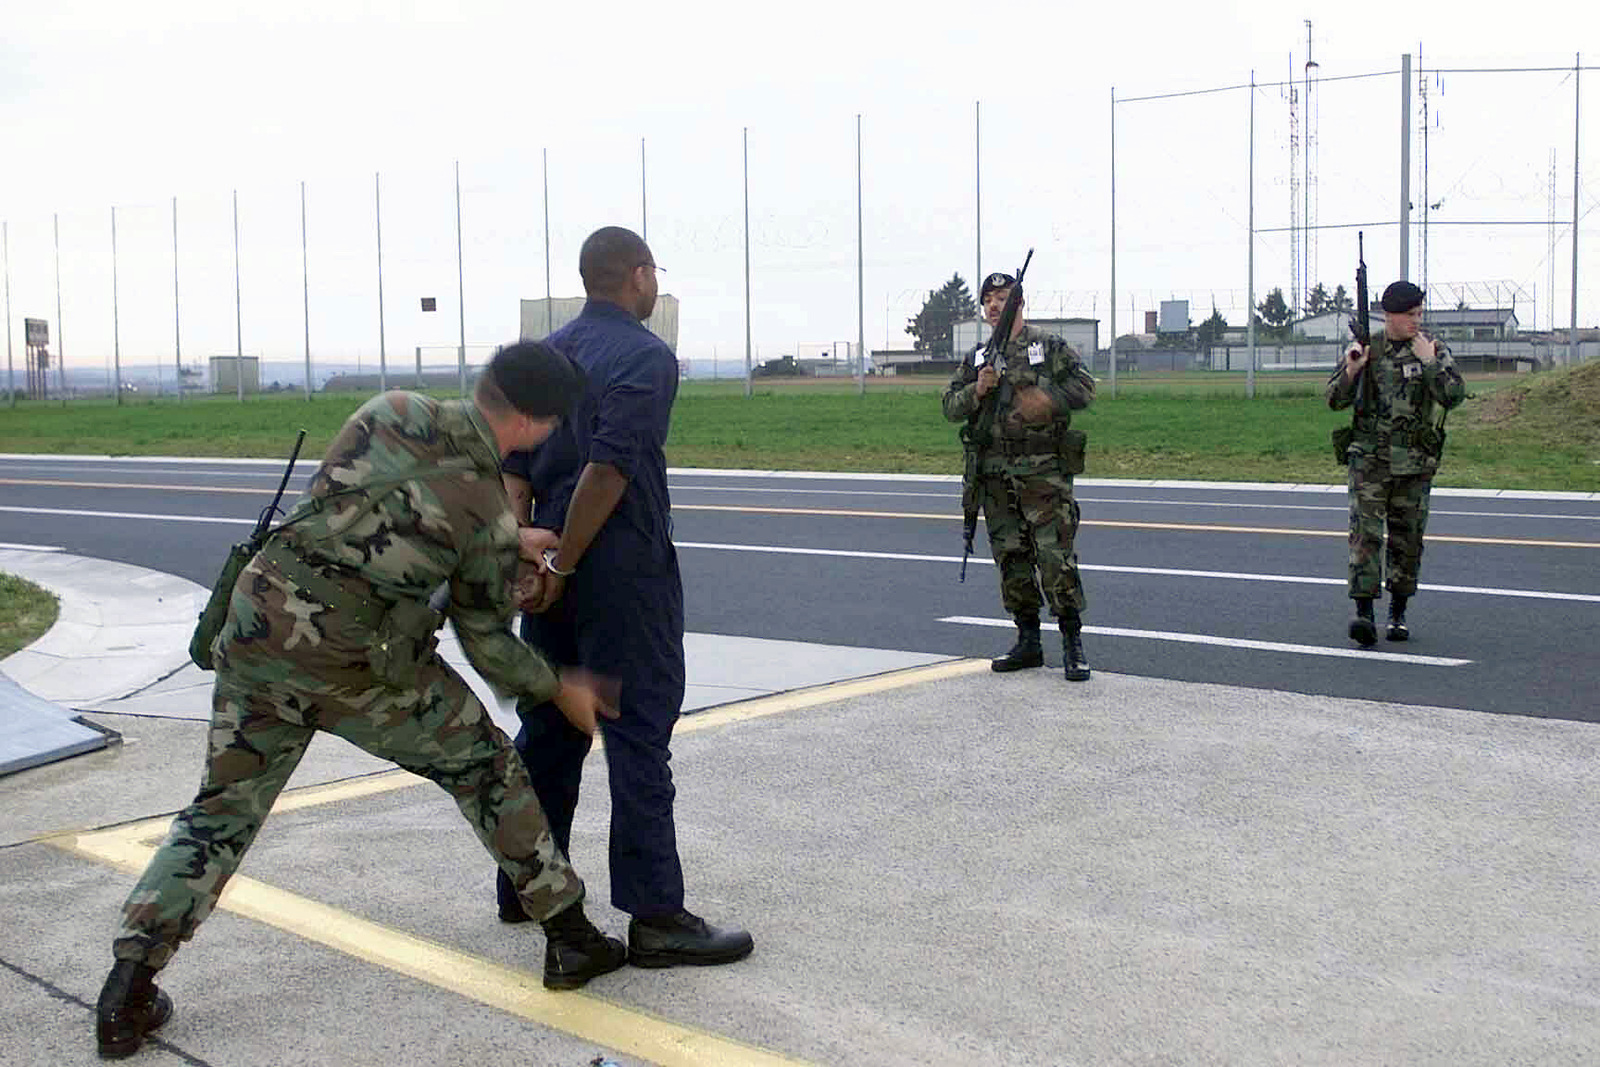 AIRMAN First Class Jason Jacobs searches an apprehended trespasser, STAFF Sergeant James Blakely a 23rd Fighter Squadron Crew CHIEF, and volunteer bad guy, while, SENIOR AIRMAN Julio Figueroa, center, and SSGT Kenneth Genter guards the scene during a security test at Spangdahlem Air Base, Germany